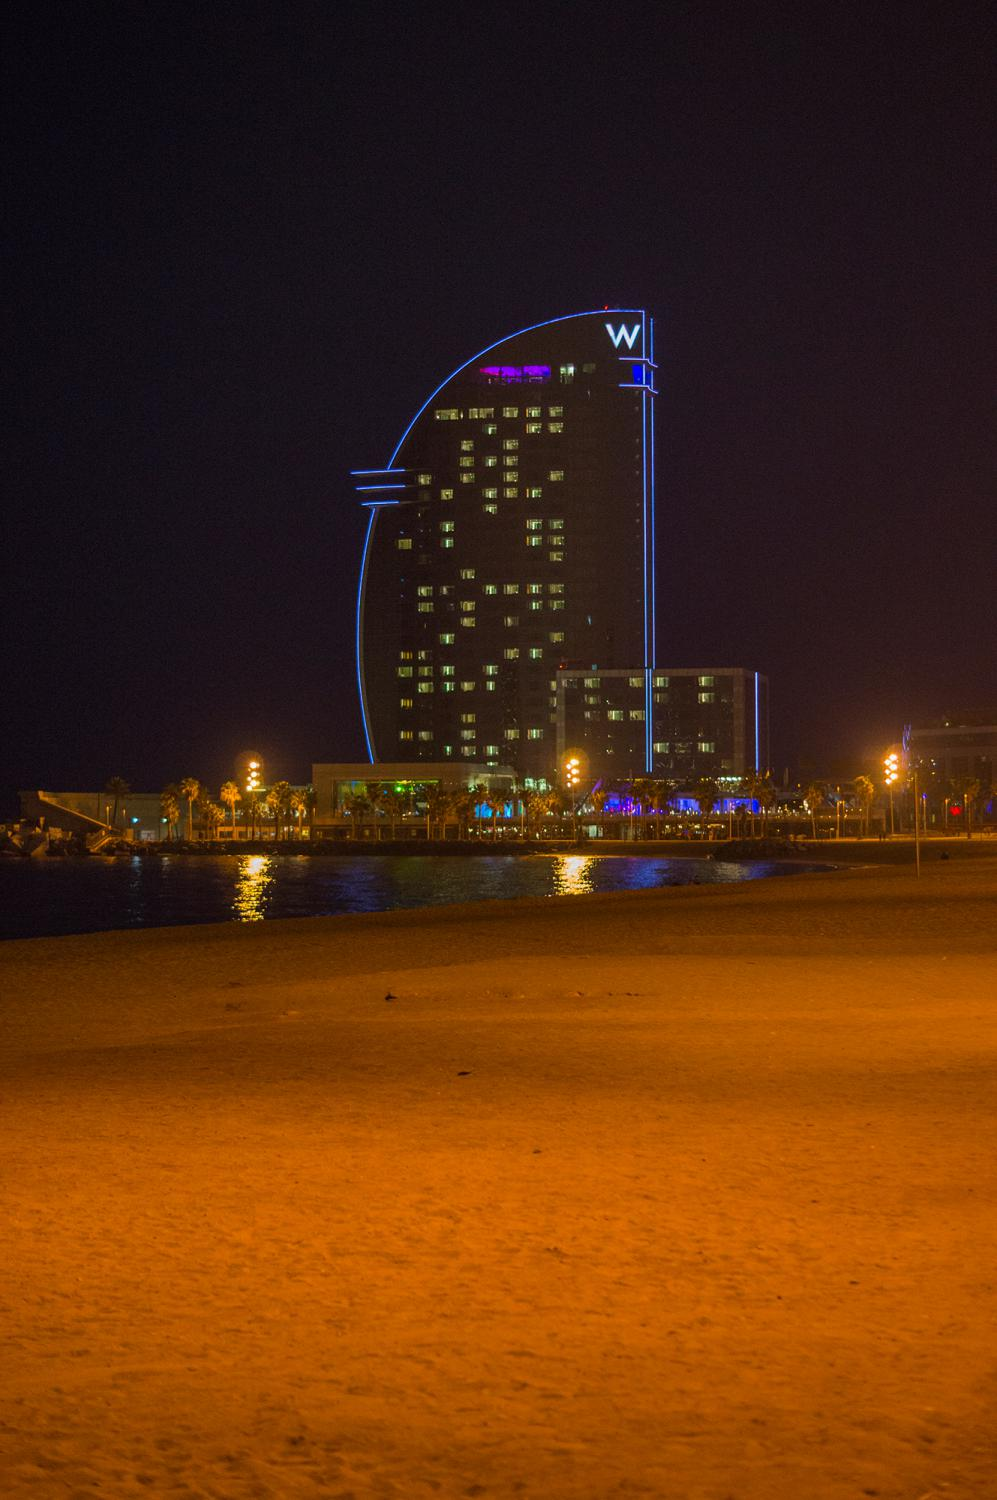 Night view of the W hotel in Barcelona